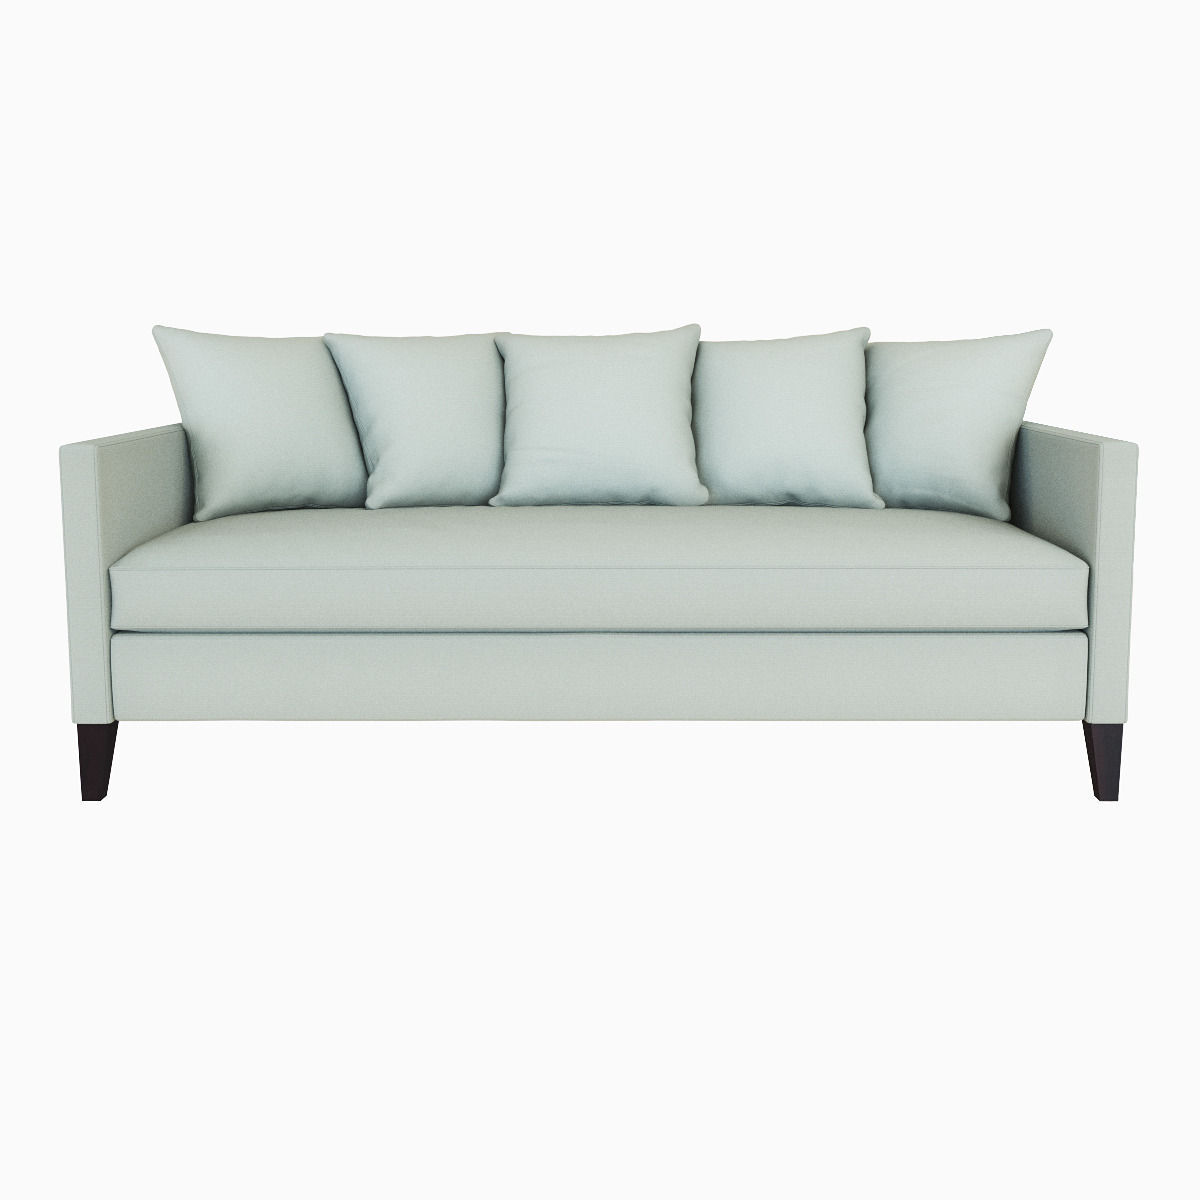 ... West Elm Dunham Down Filled Sofa   Toss Back 3d Model Max Obj Fbx Mtl  ...